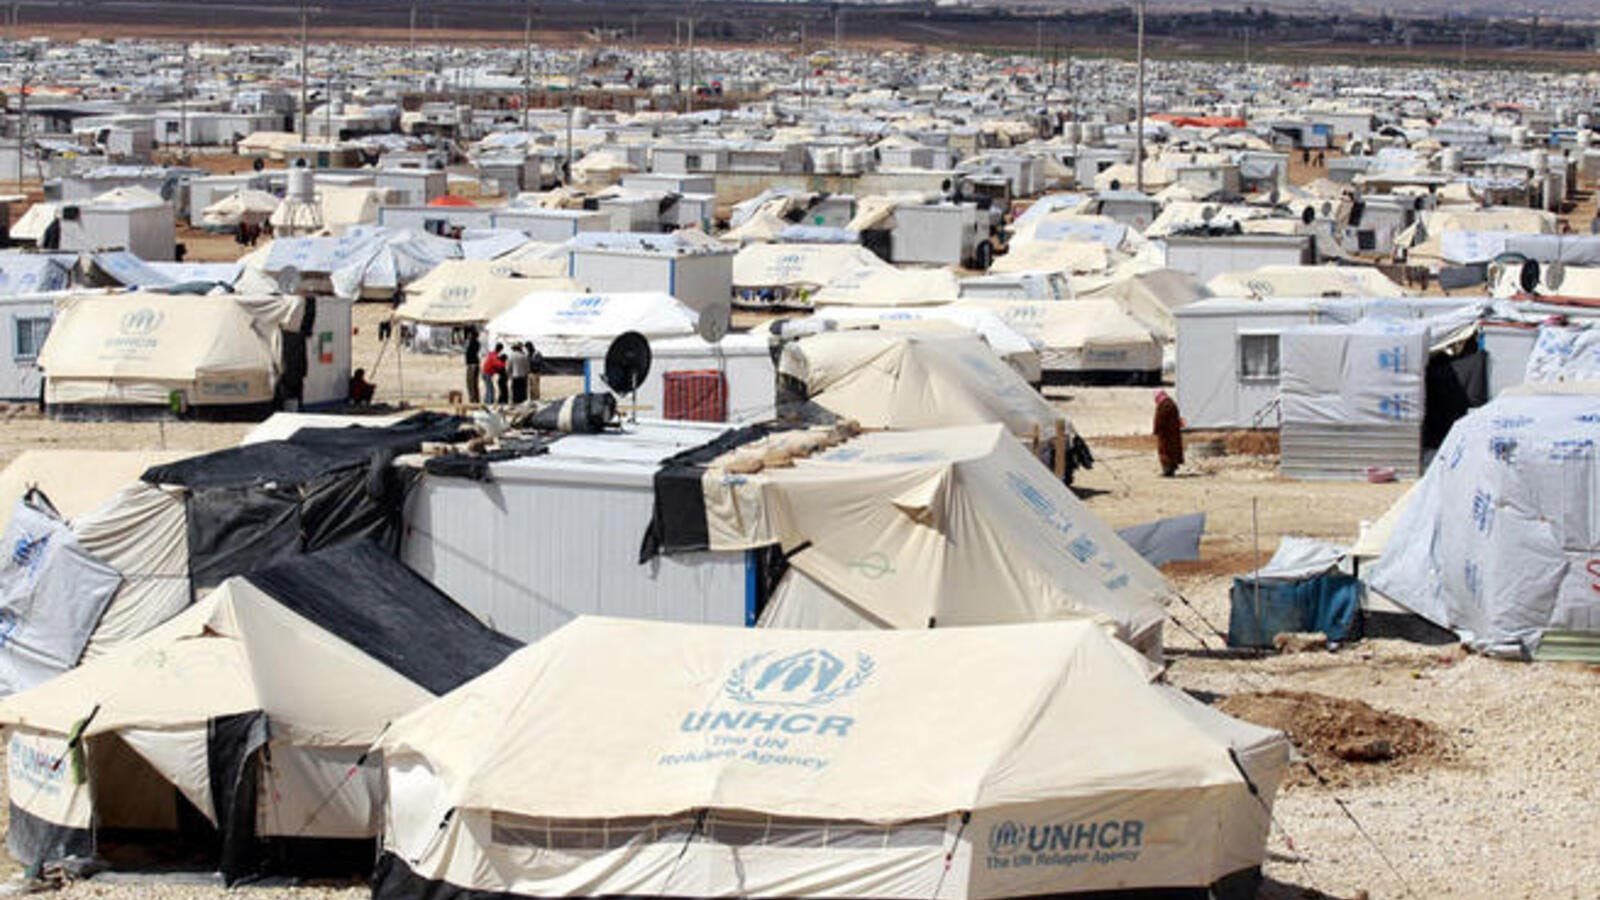 UNICEF intends to study refugees' conditions in Jordan camps. (AFP/ File Photo)